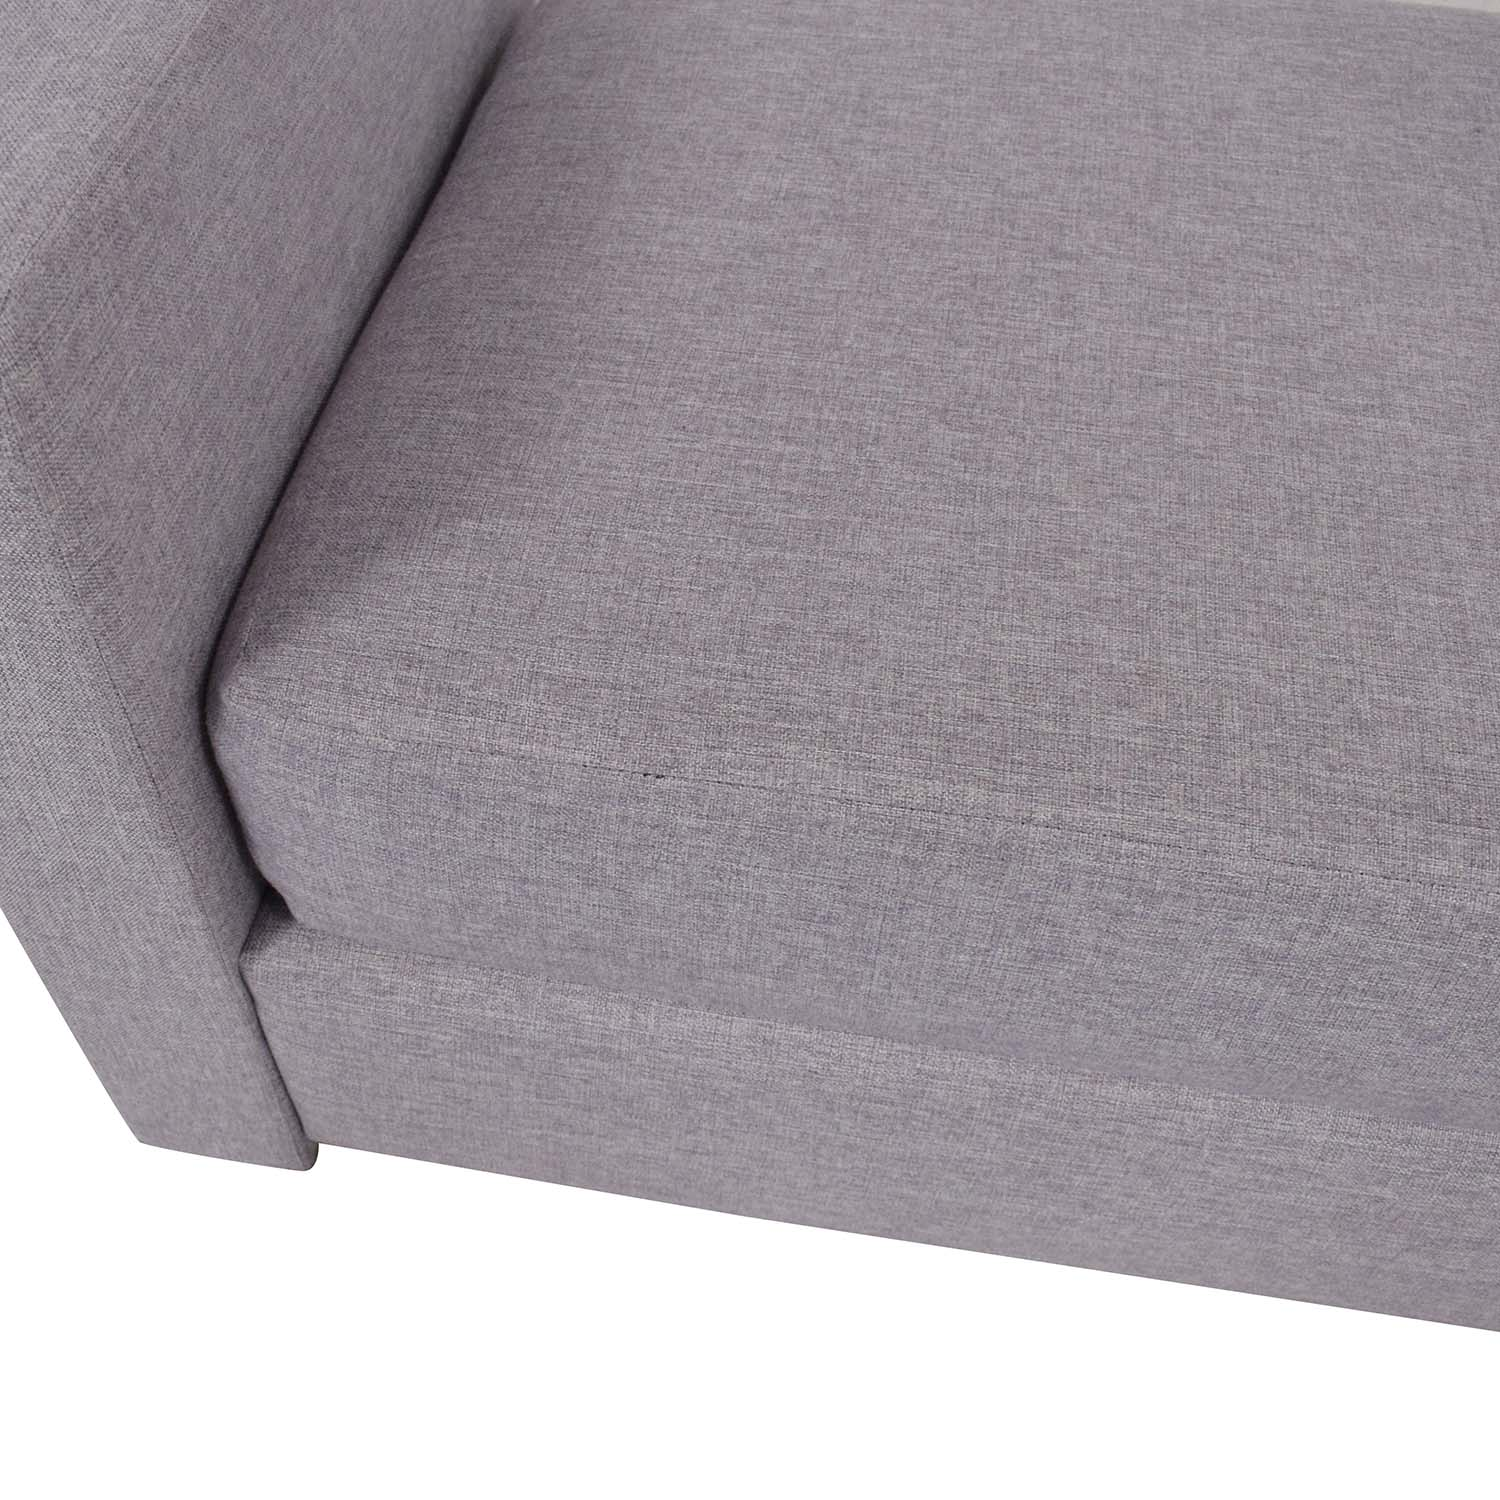 Breda Modern Backless Daybed Sofa / Chaises